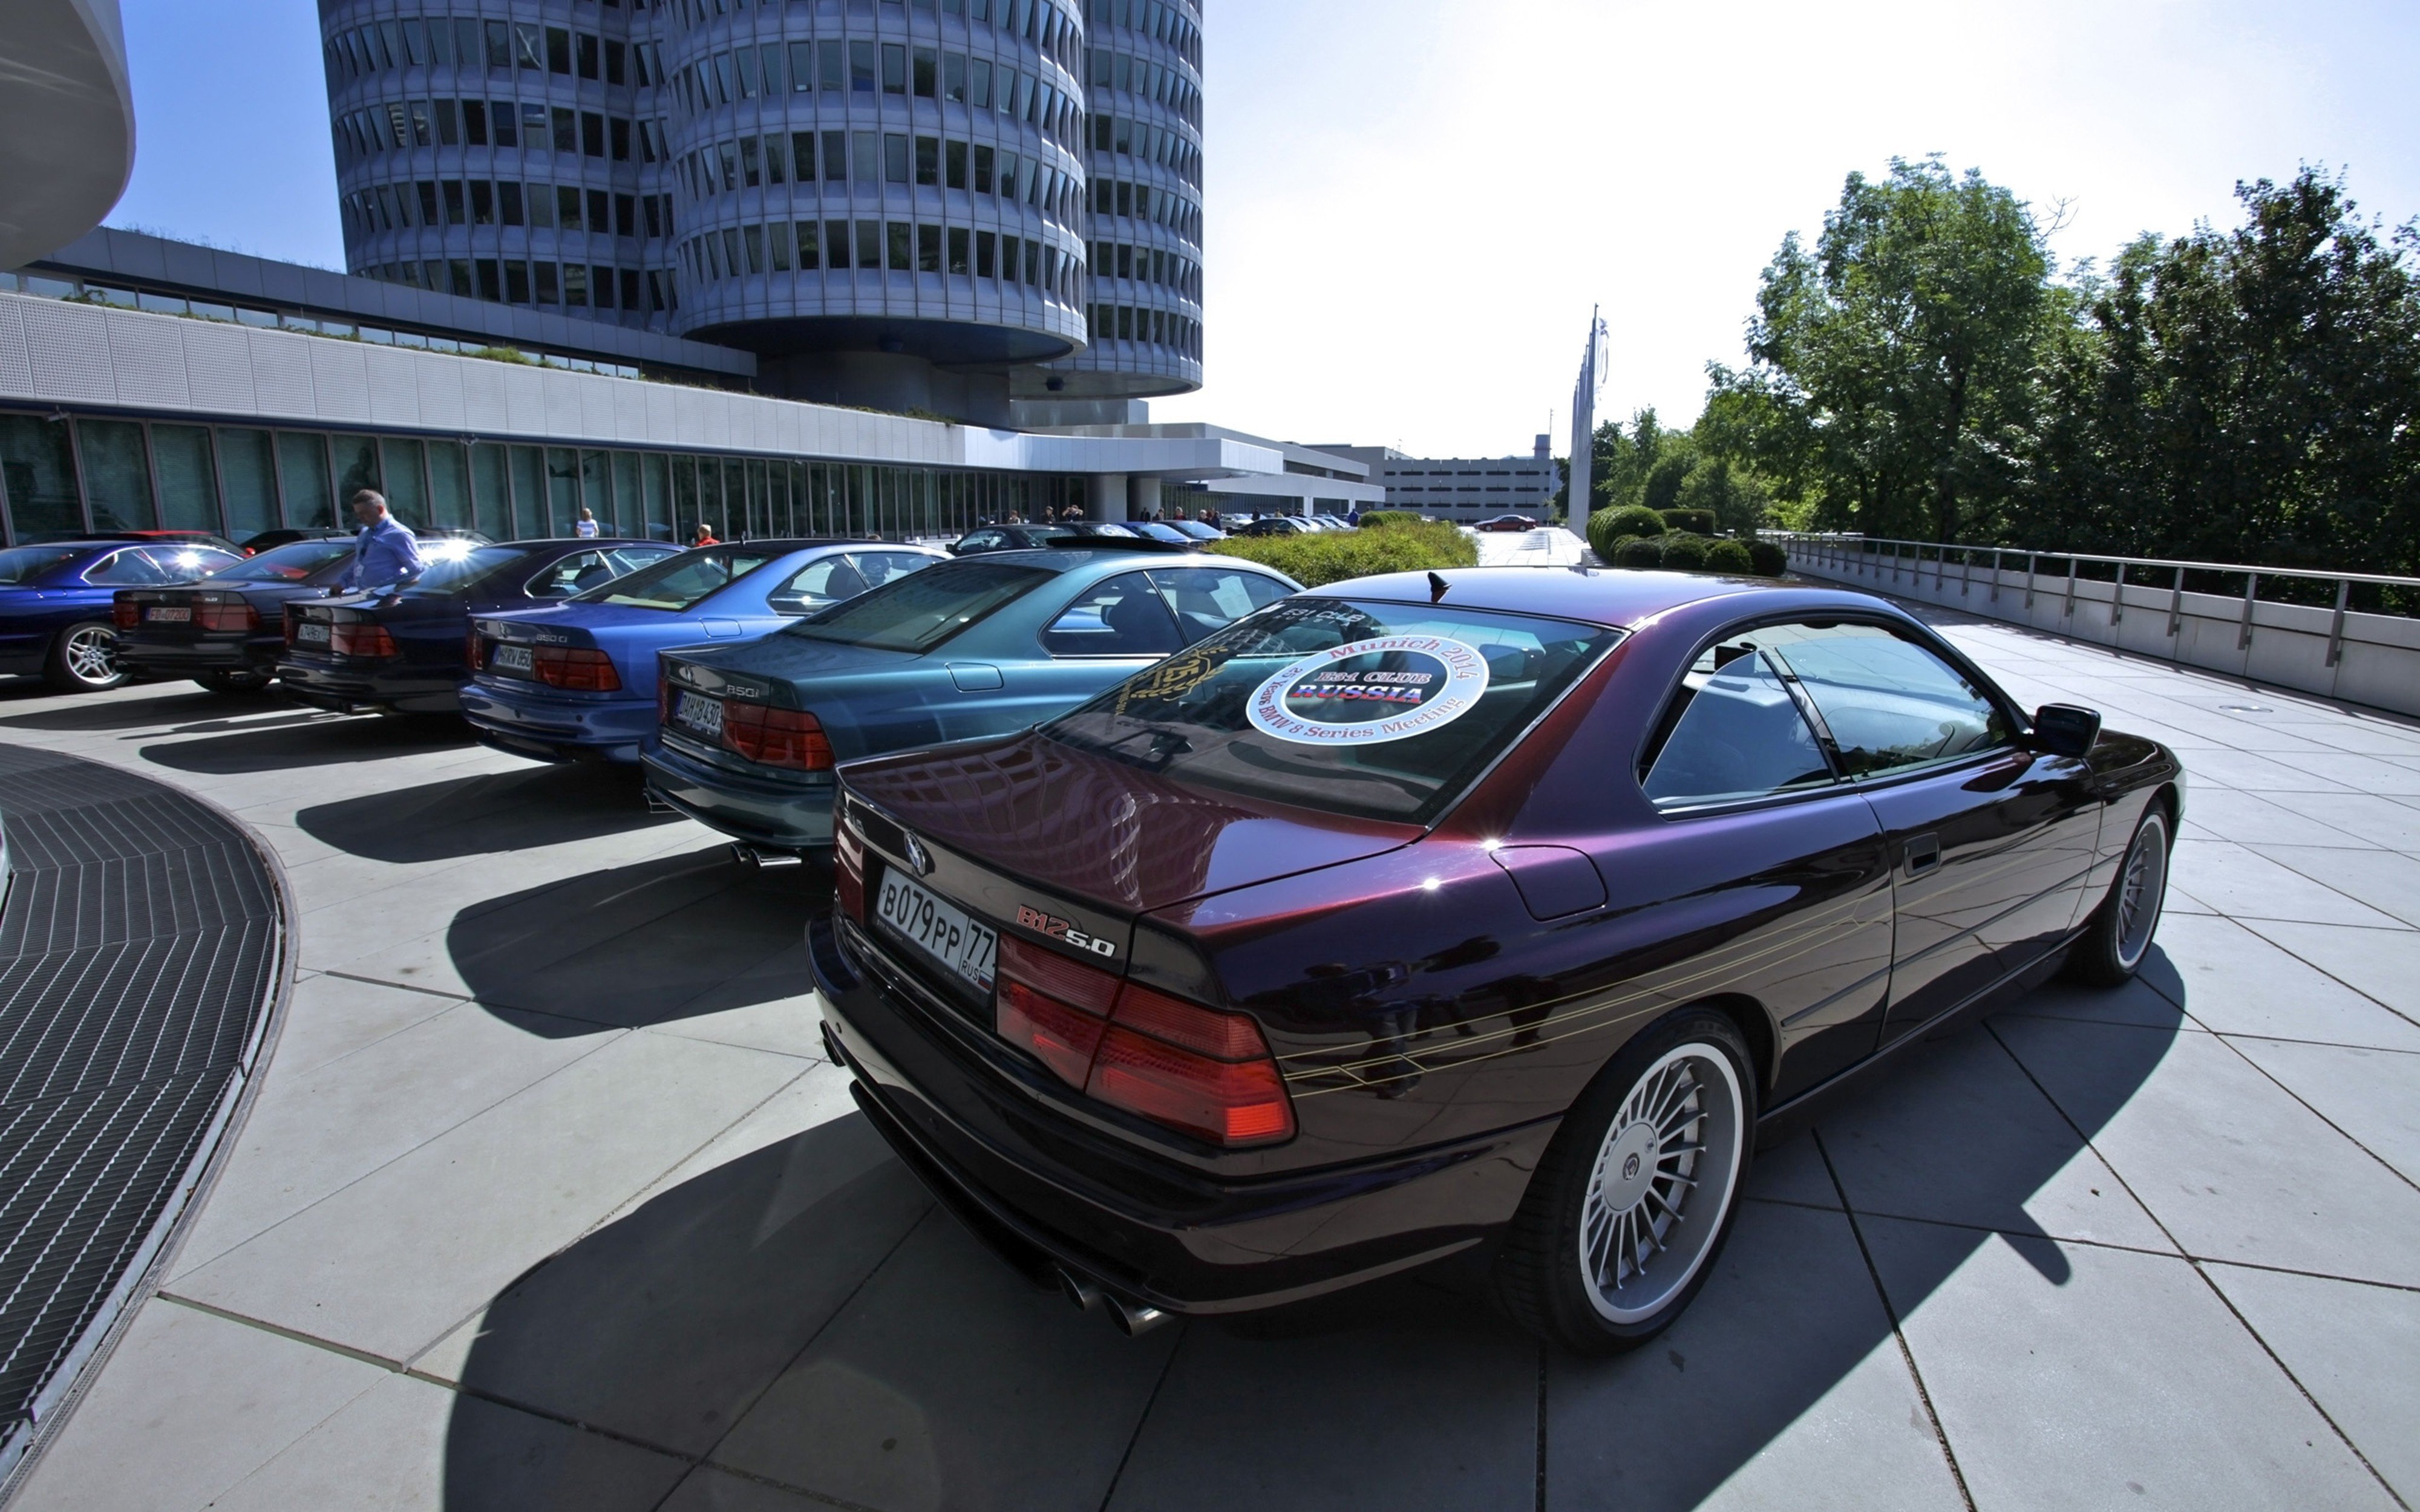 1988 1999 BMW 8 Series 850i Car Vehicle Classic Sport Supercar Germany 4000x2500 10 Wallpaper